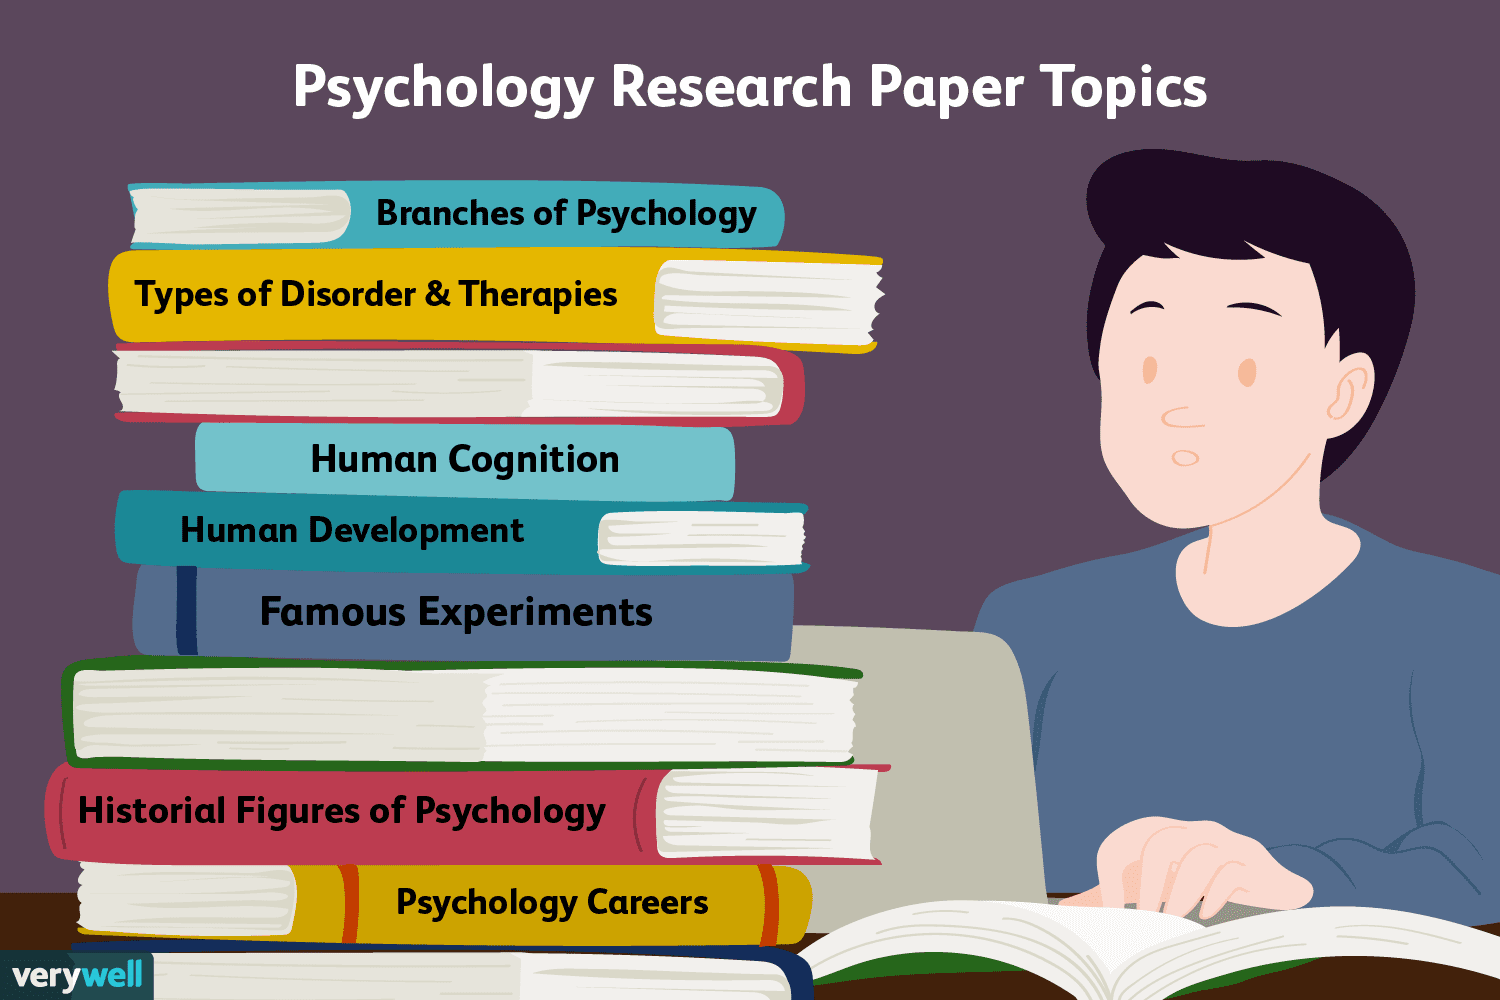 007 Research Paper Examples Of Psychology Striking Topics Full